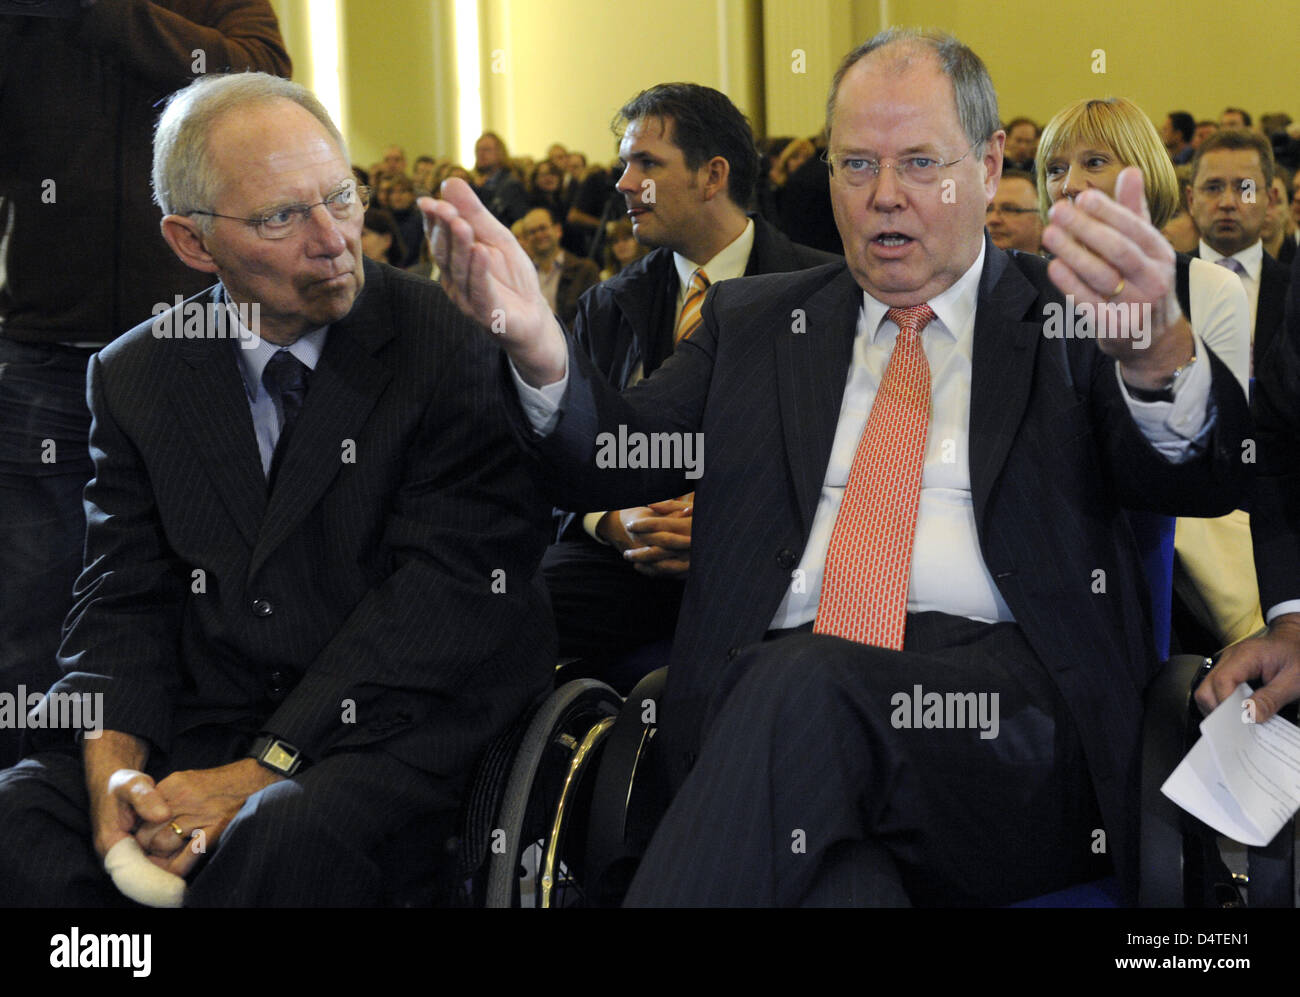 Peer Steinbrueck and new Minister of Finance Wolfgang Schaueble arrive for the assumption of the Ministry of Finance - Stock Image